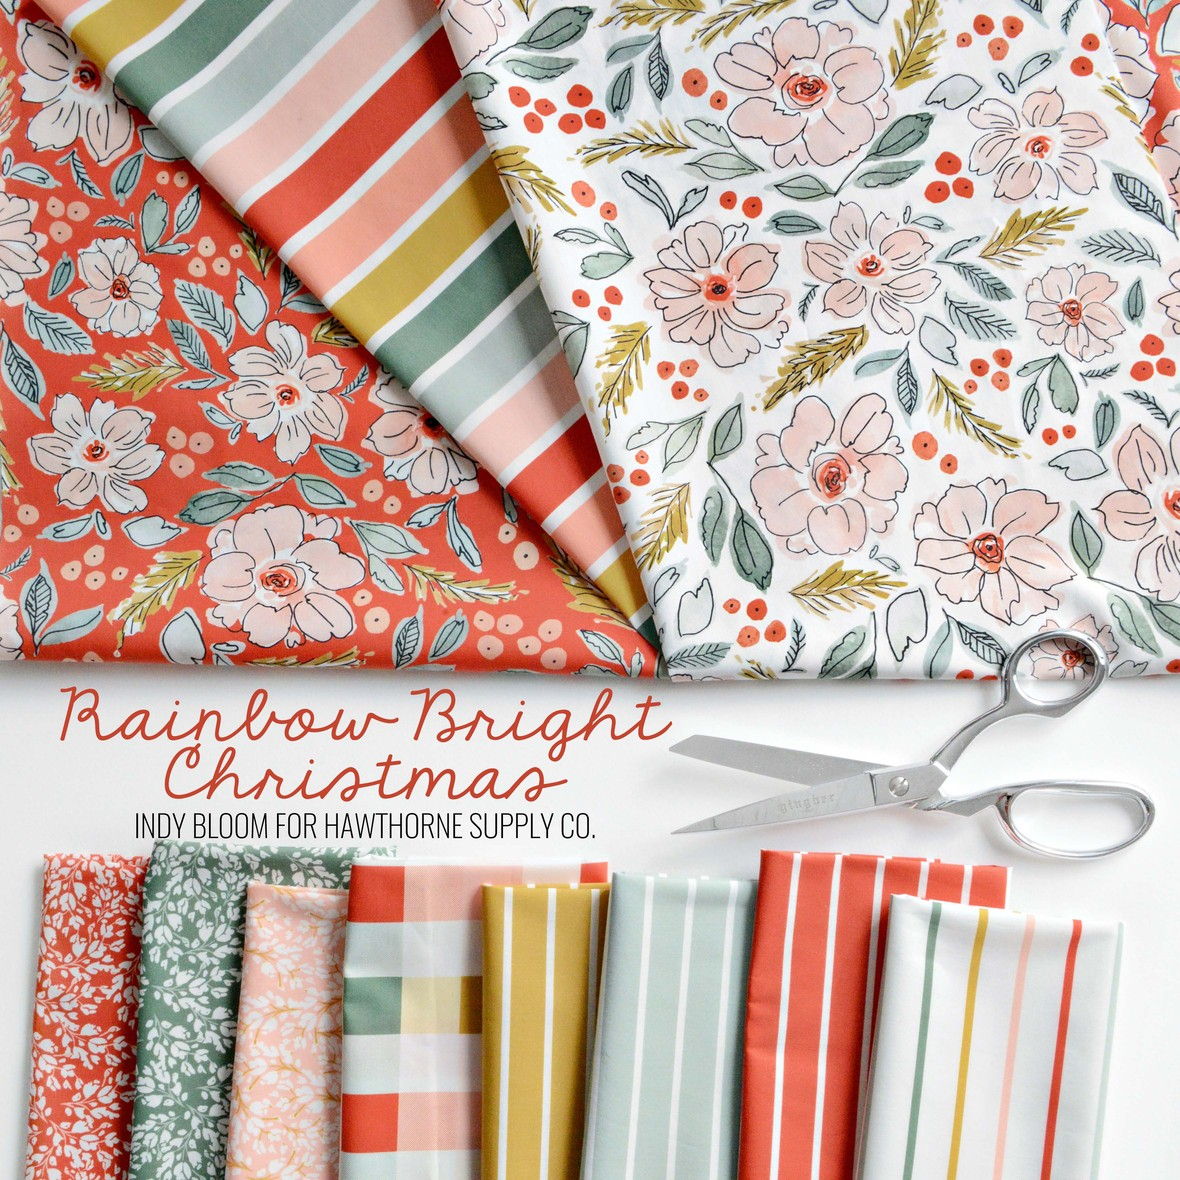 Rainbow Bright Christmas Indy Bloom fabric for Hawthorne Supply Co